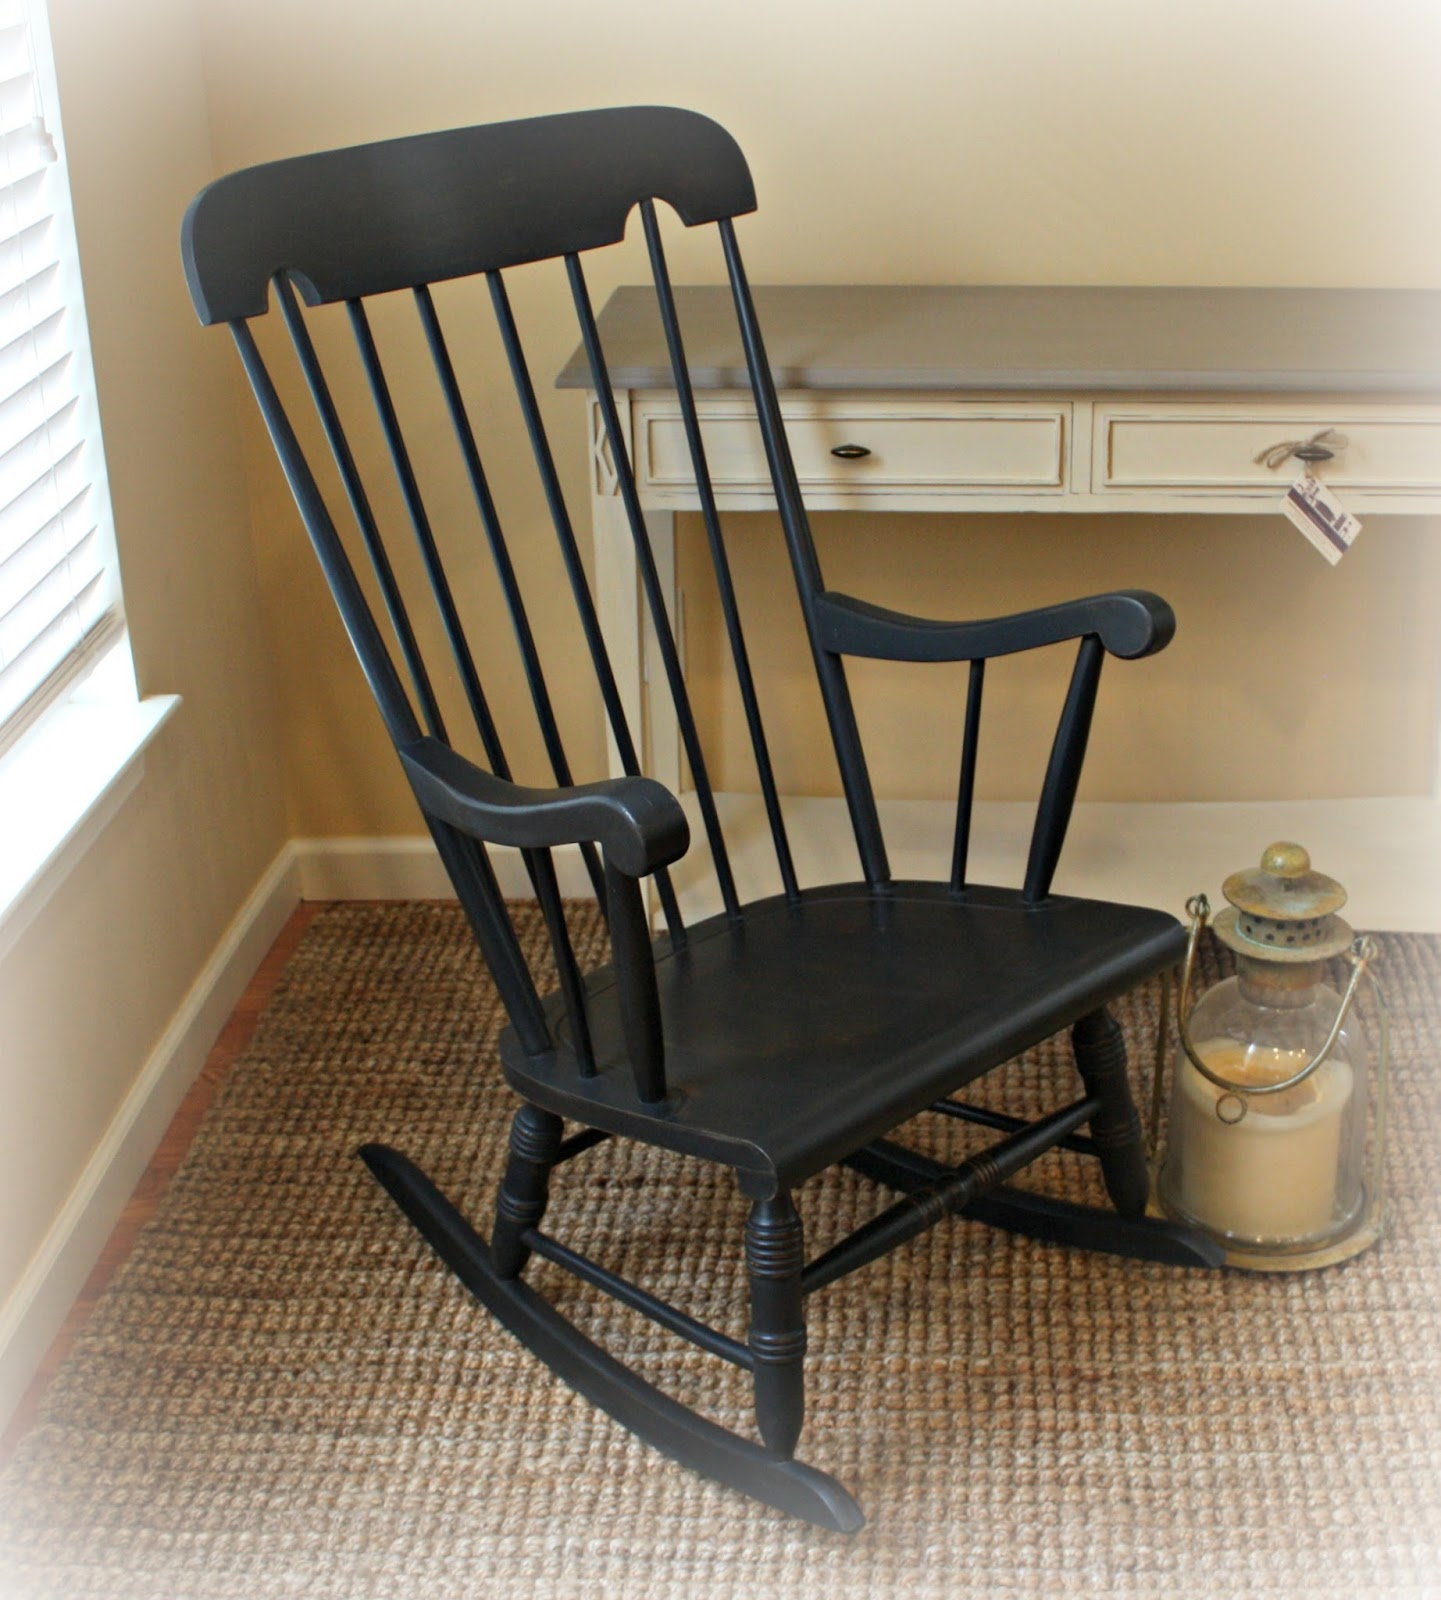 Vintage Rocking Chair with Damaged Finish Gets a New Look